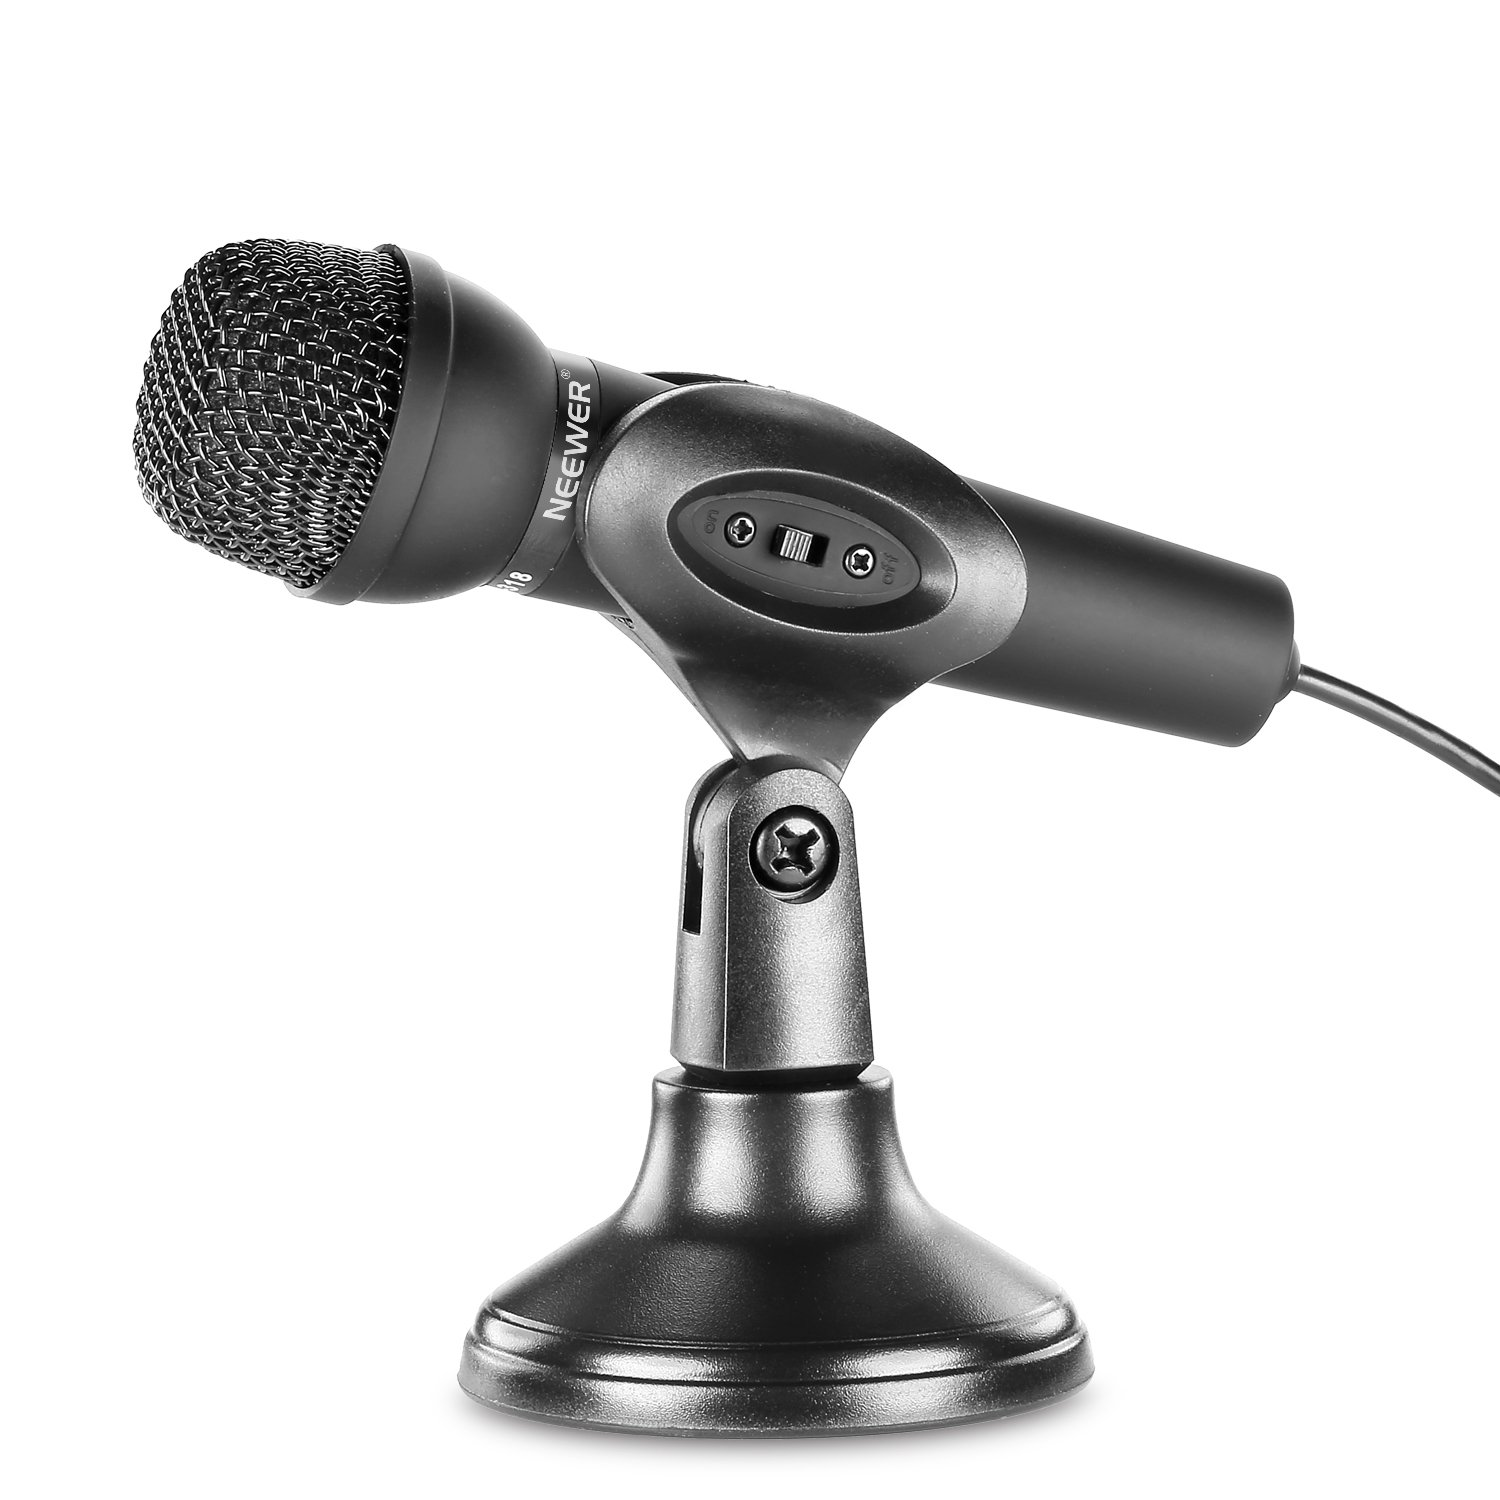 Neewer® Mini Studio Microphone with 3.5mm Stereo Plug and Desktop Stand for PC Computer or Laptop, Ideal for Whatsapp/QQ / MSN/SKYPE Internet Chat, Podcast, Singing, Recording or More